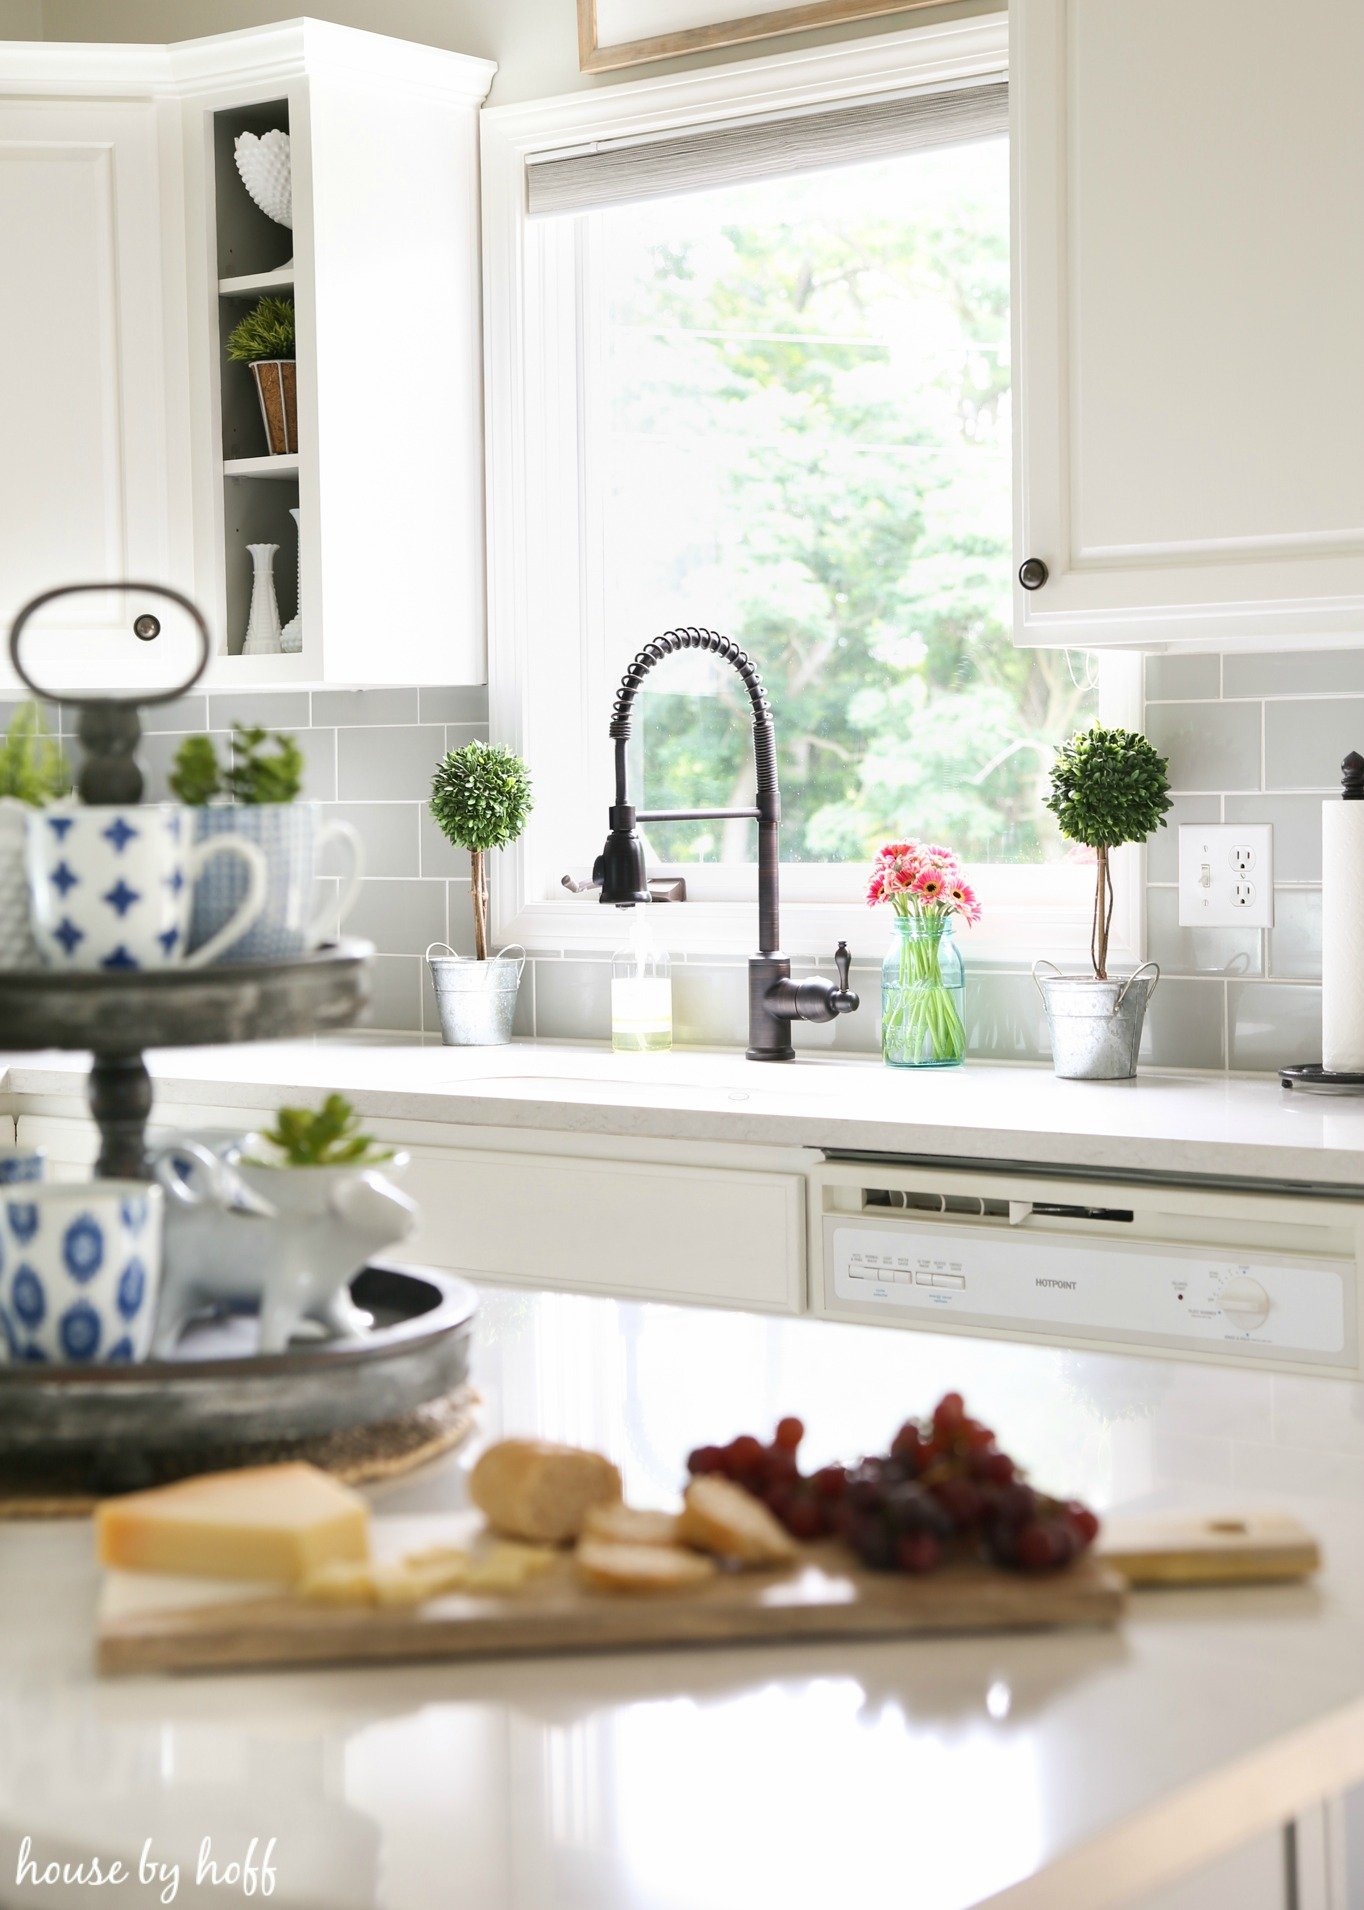 A modern farmhouse kitchen makeover house by hoff - Modern farmhouse kitchen cabinets ...